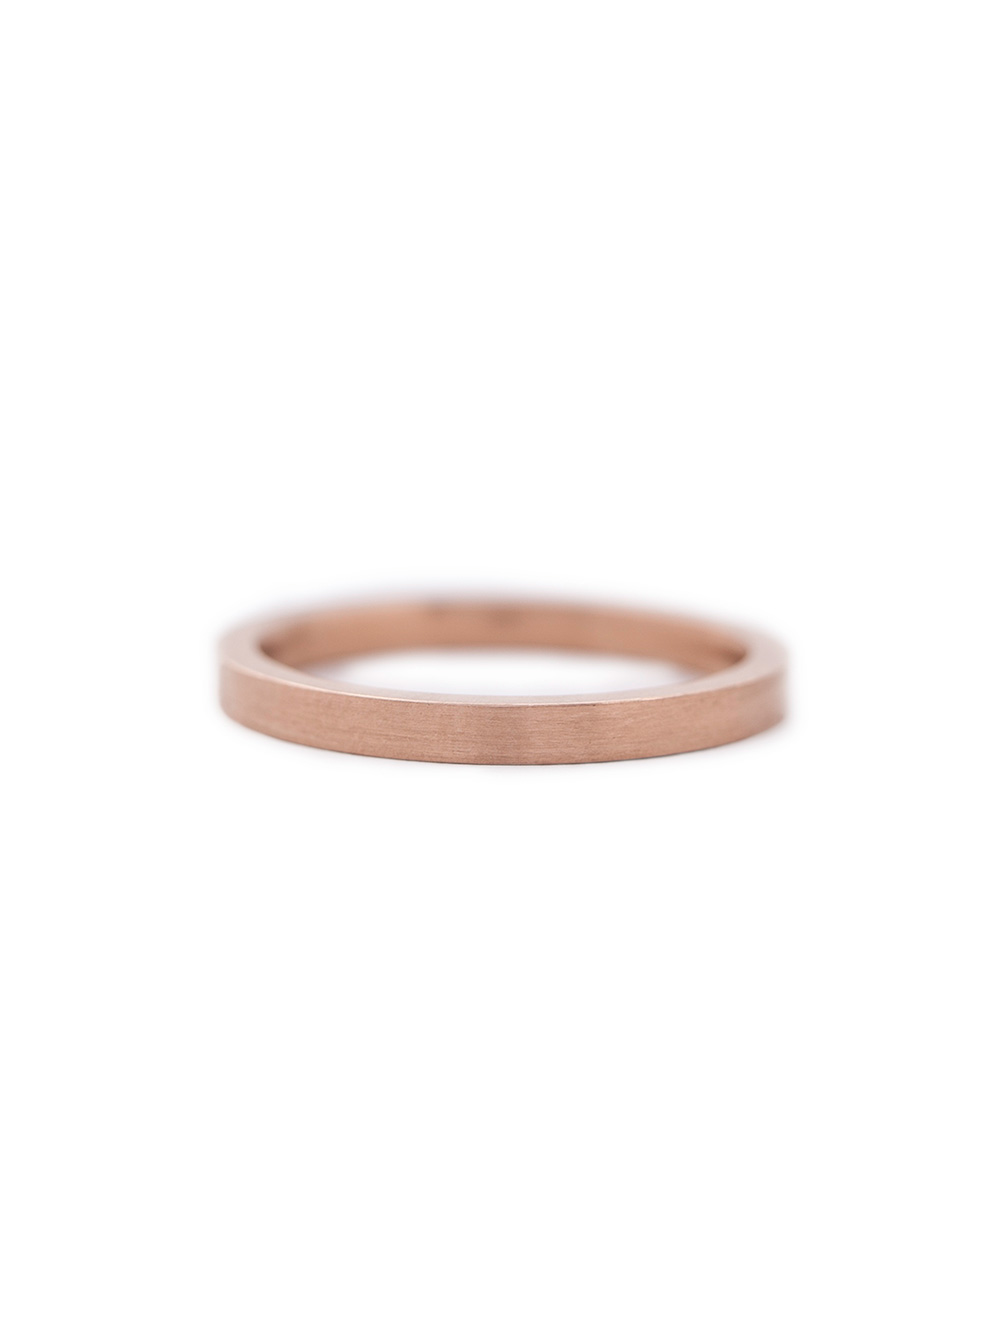 Rose gold fine band, £660